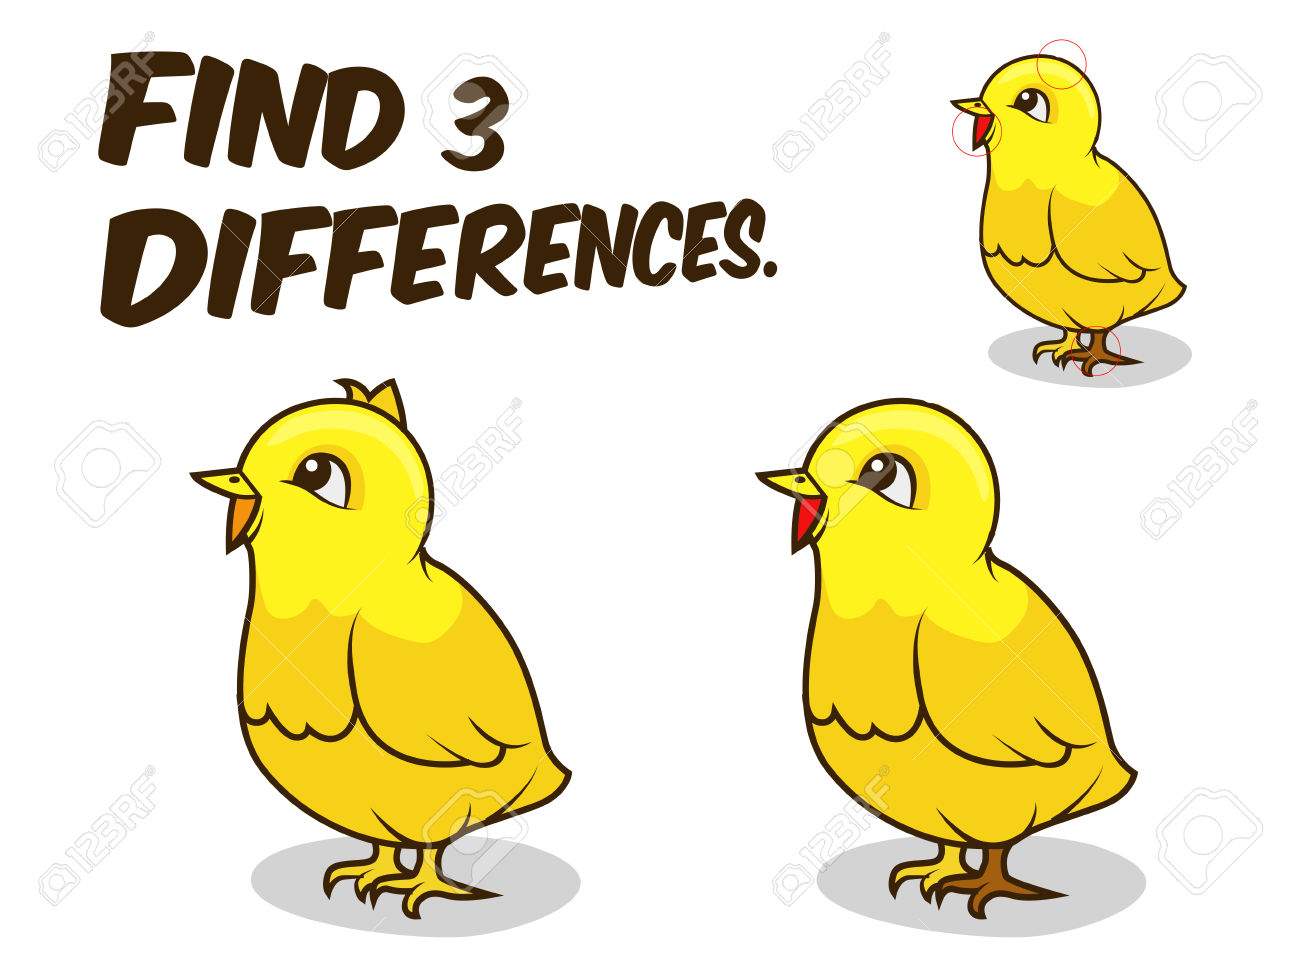 Find Differences Game Chicken Cartoon Colorful Vector Illustration.